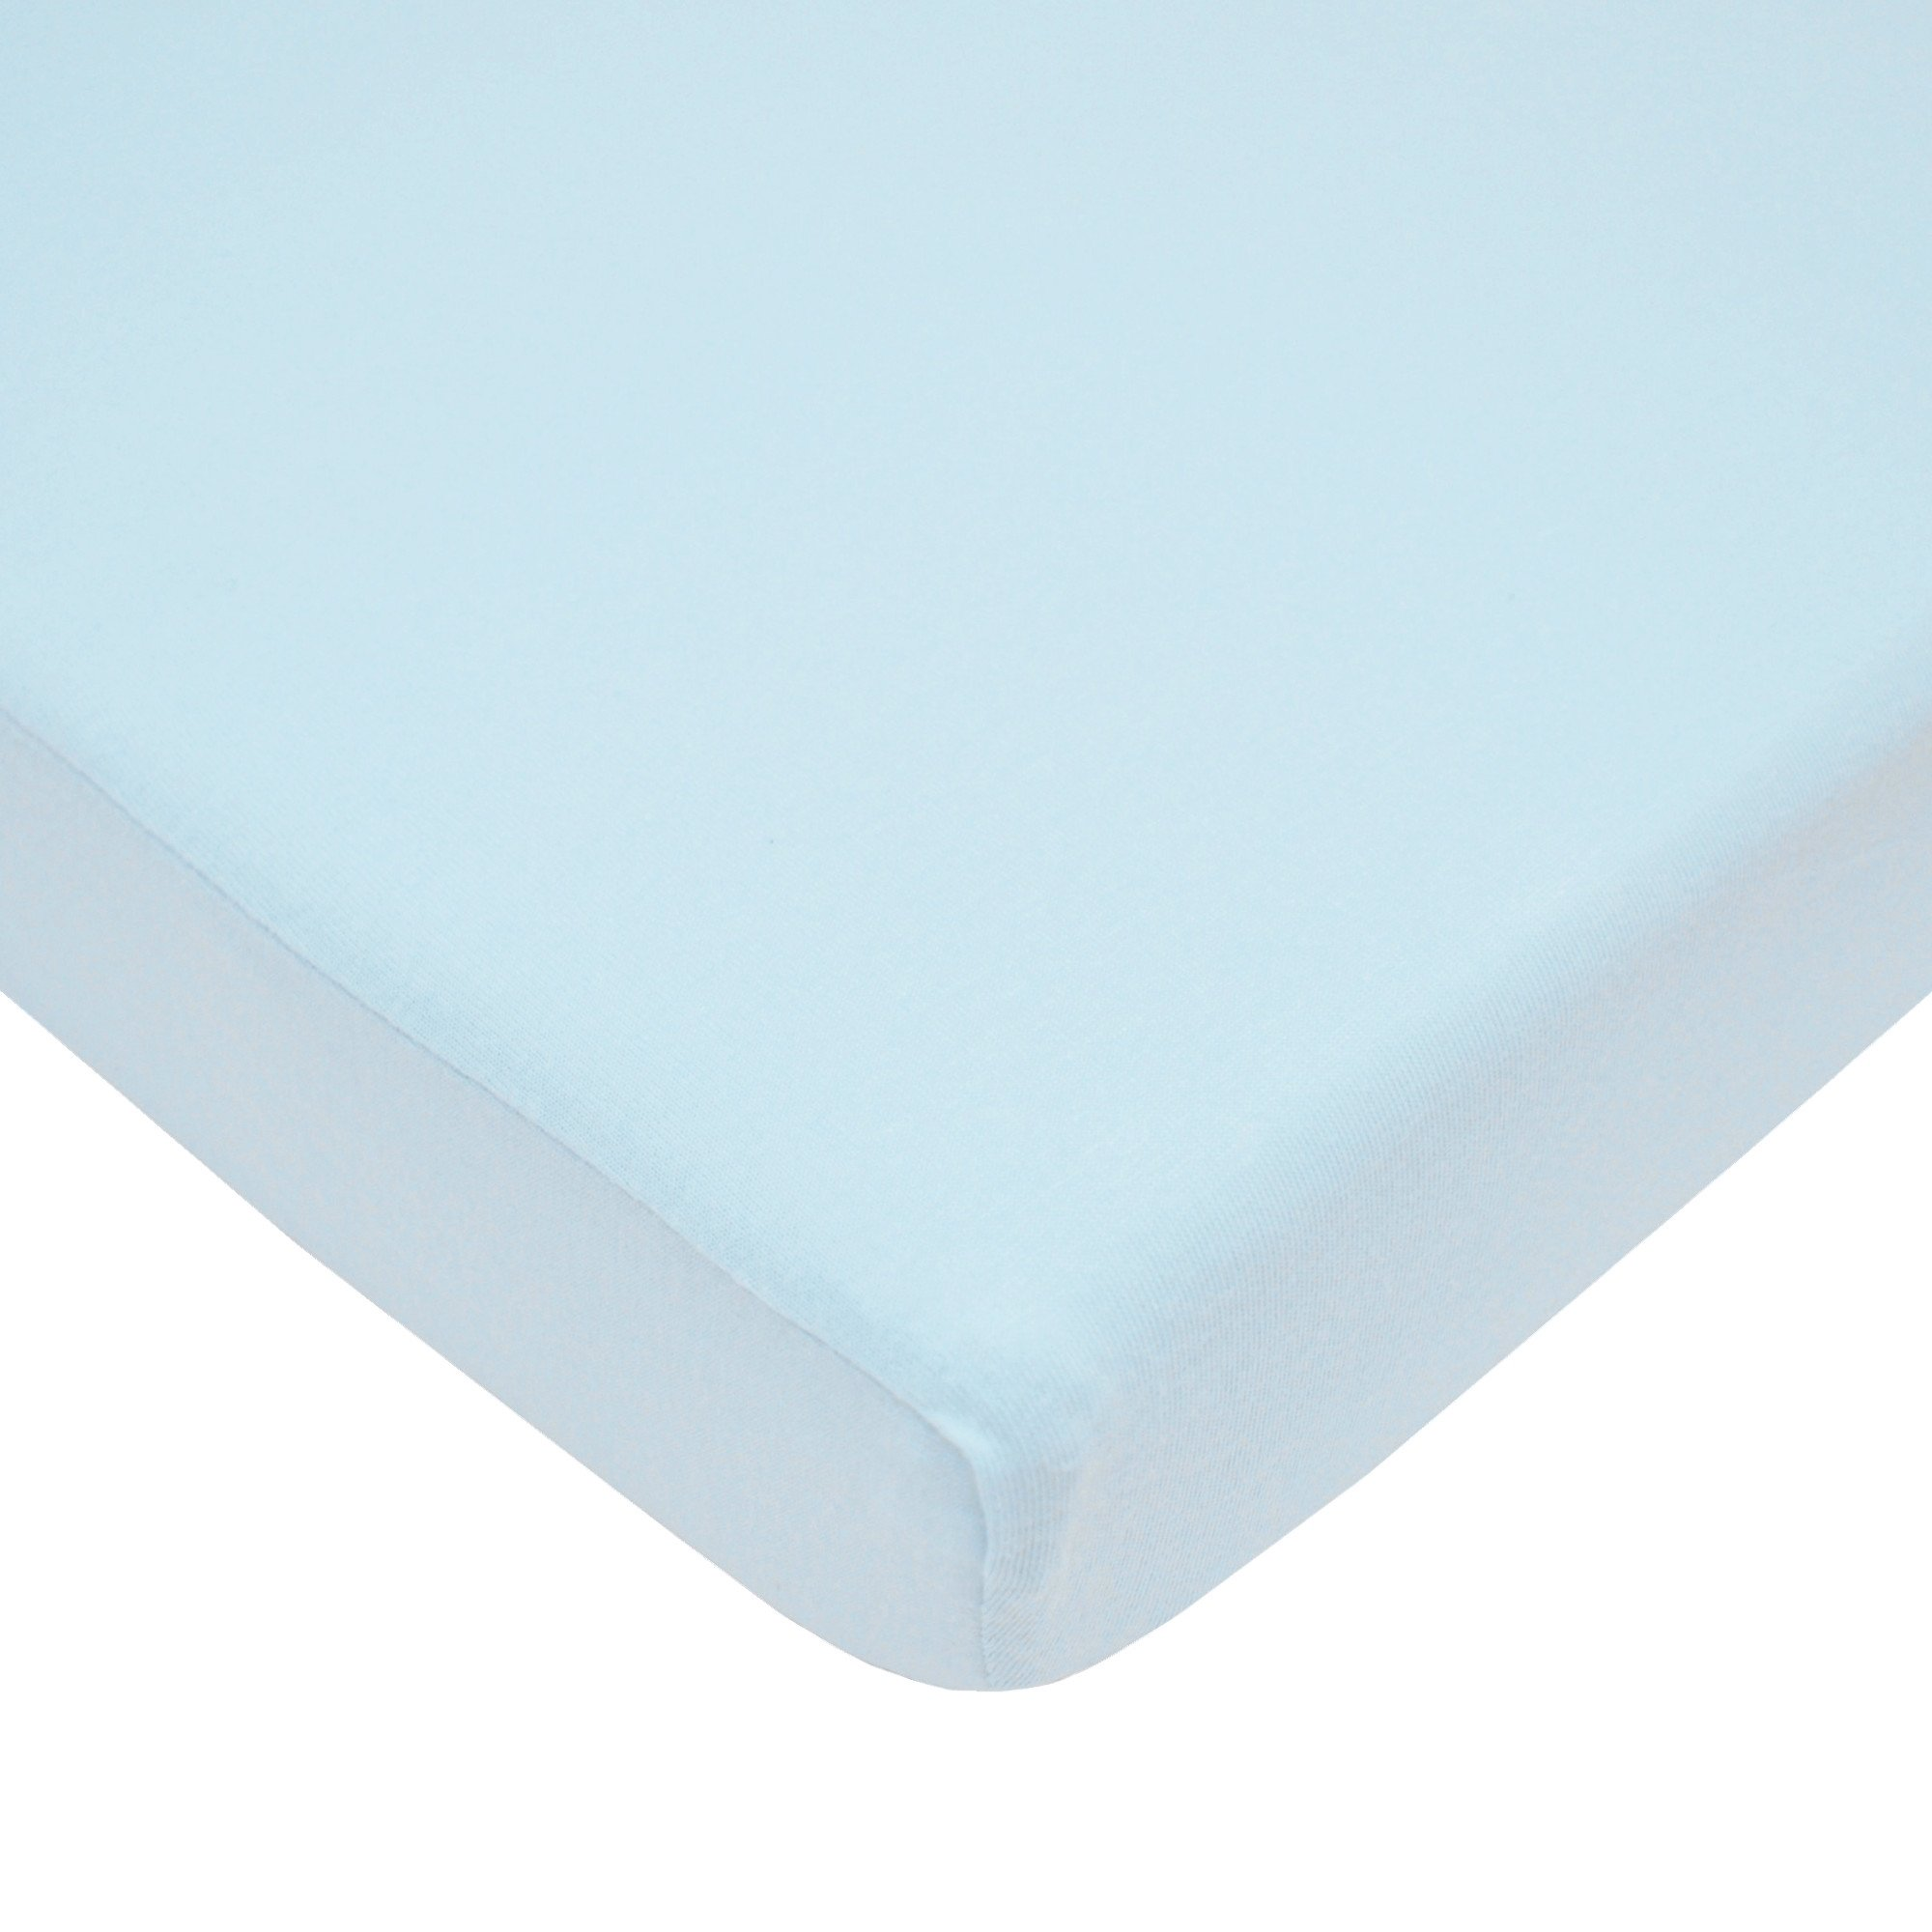 American Baby Company 100% Natural Supreme Cotton Jersey Knit Fitted Portable/Mini-Crib Sheet, Blue, Soft Breathable, for Boys and Girls